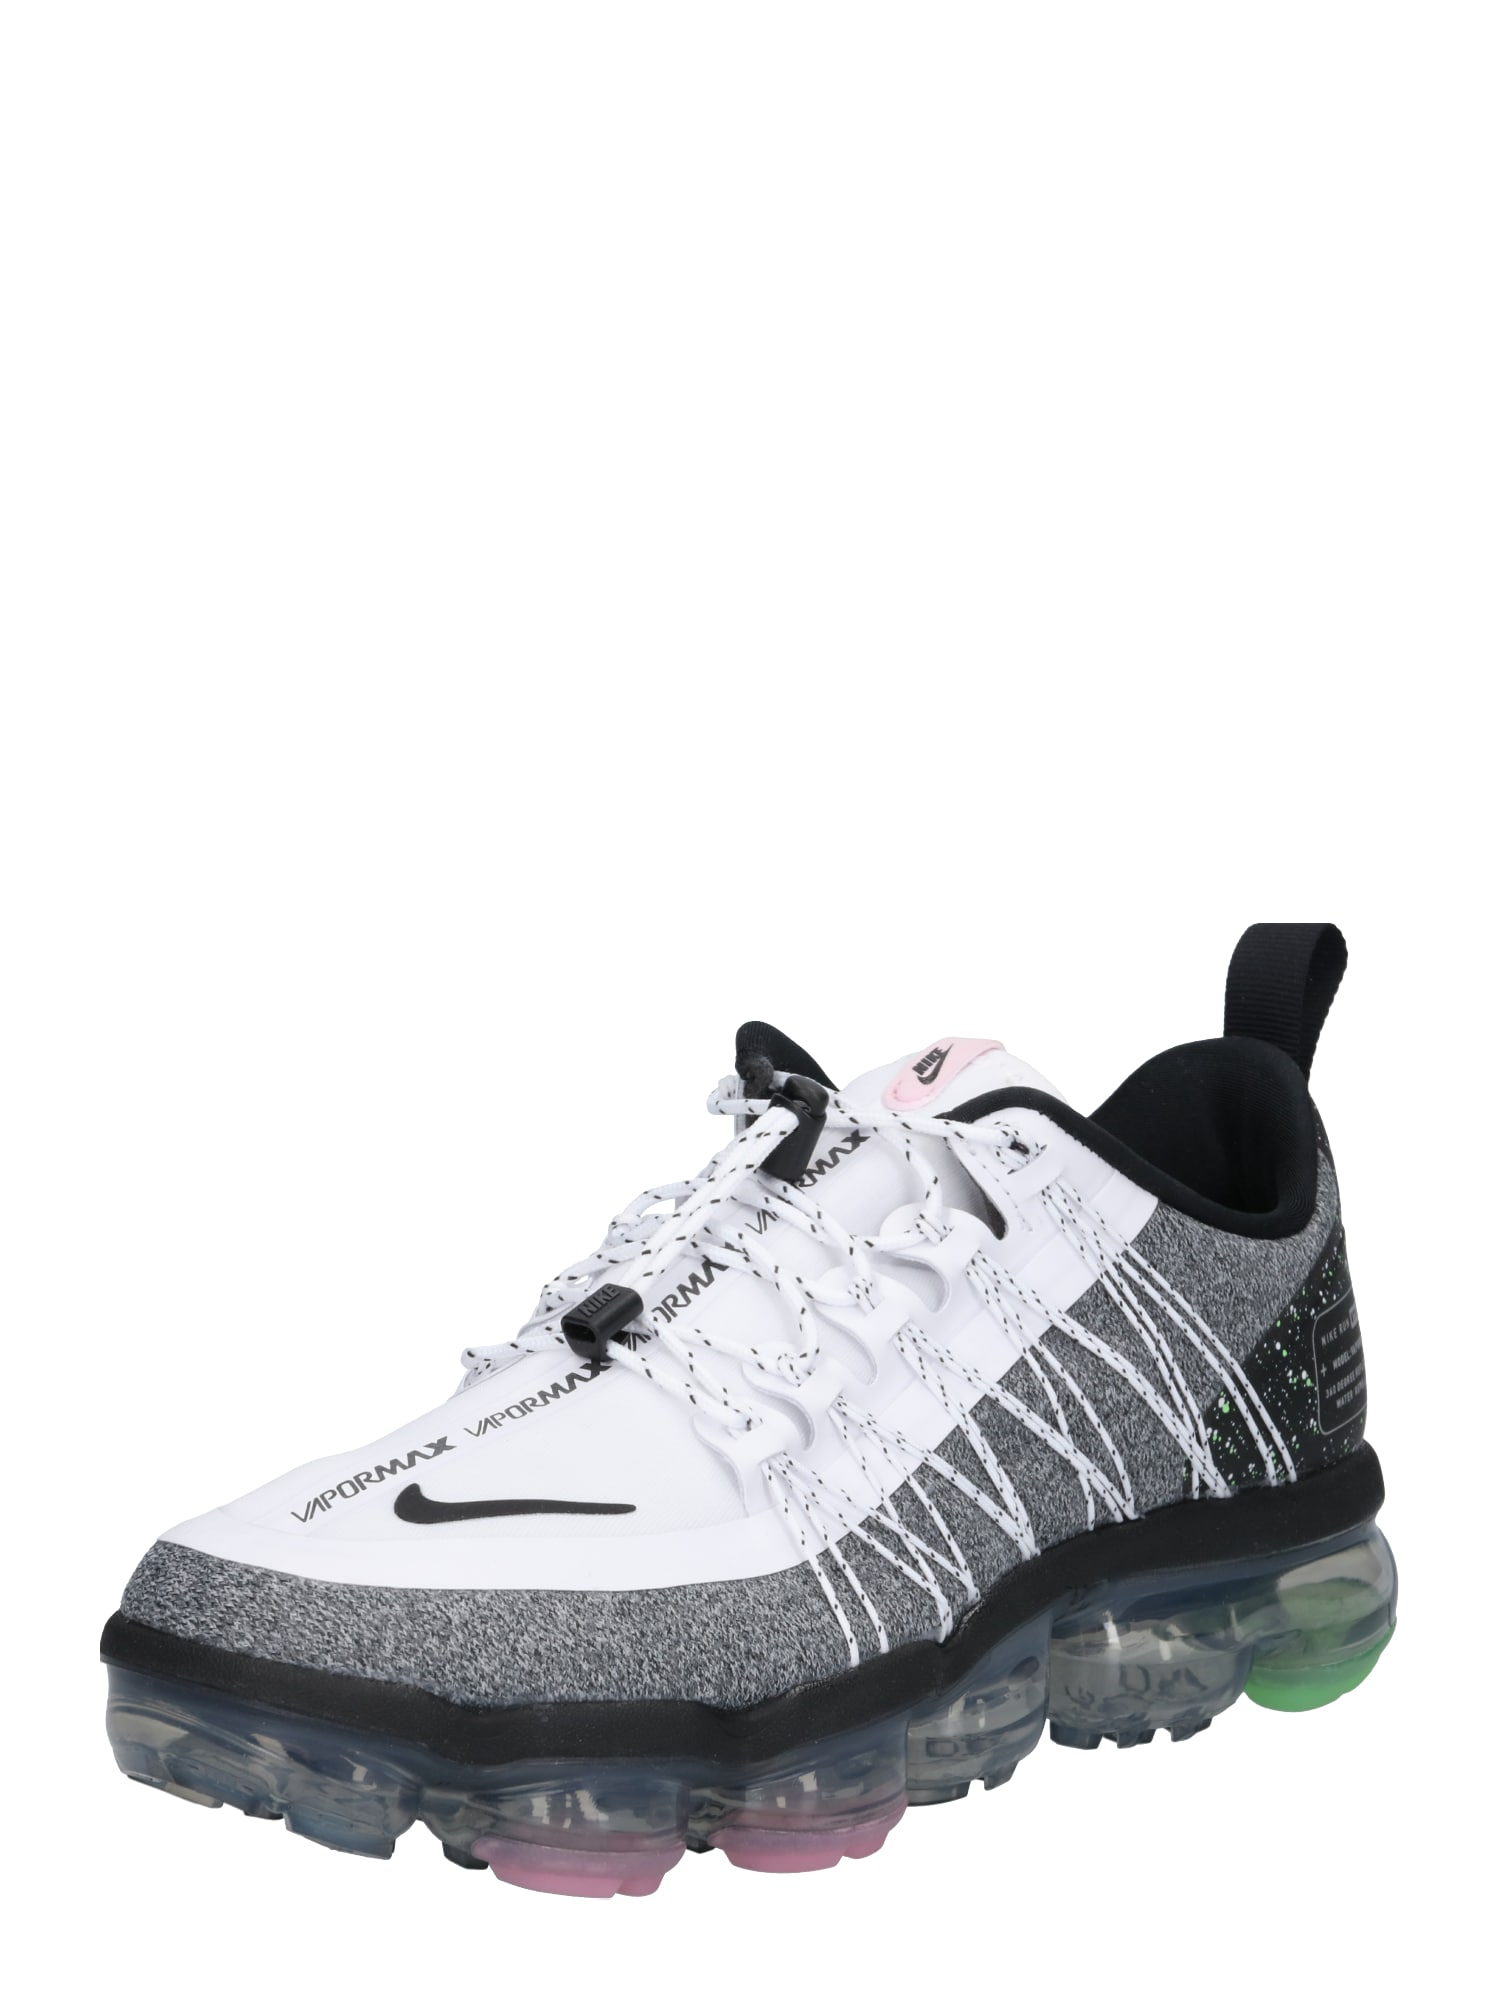 NIKE, Dames Loopschoen 'Air VaporMax Run Utility', grijs / wit